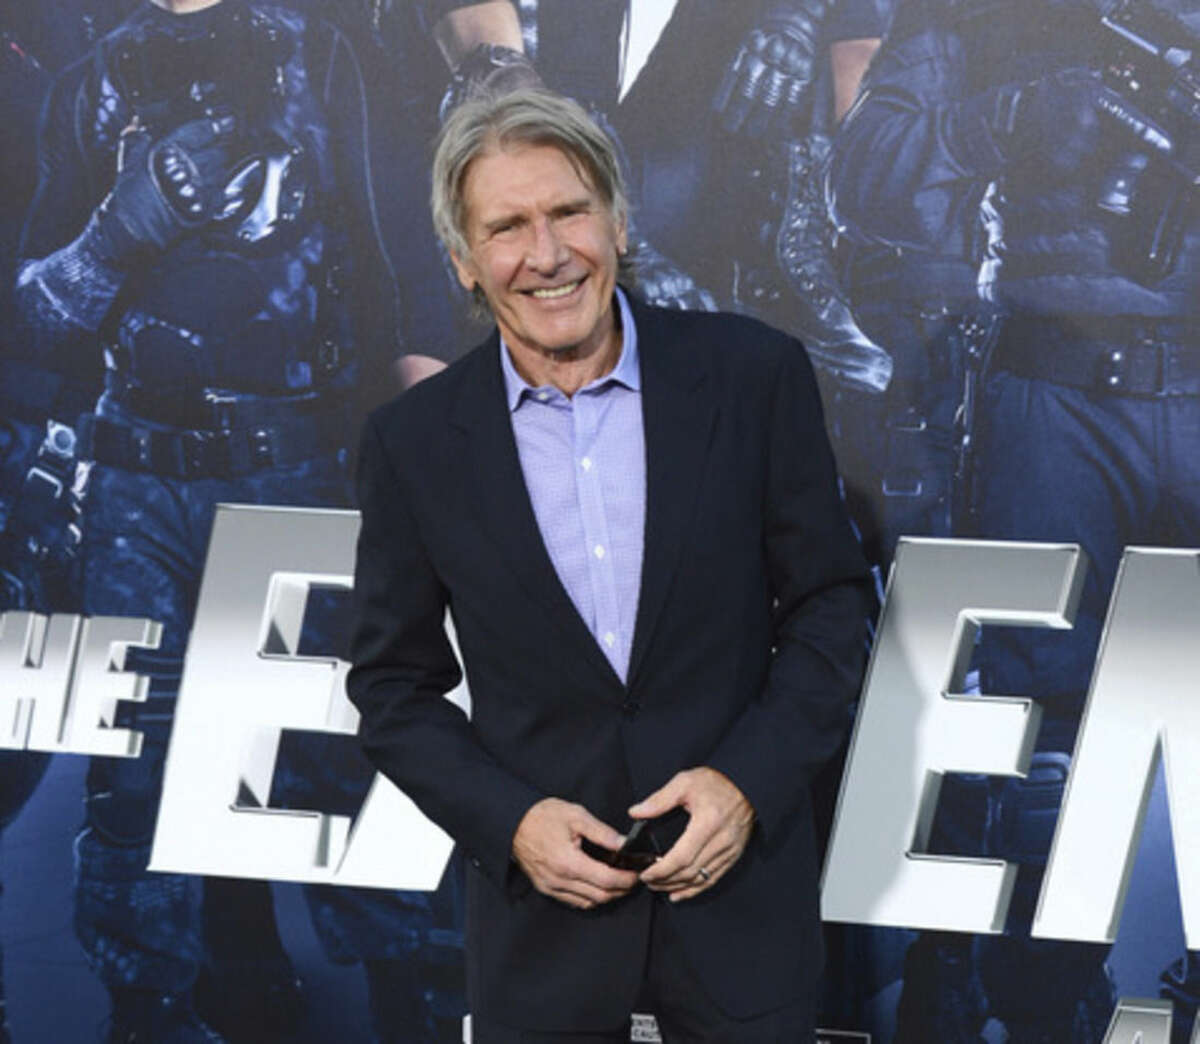 """FILE - In this Aug. 11, 2014 file photo, Harrison Ford arrives at the premiere of """"The Expendables 3"""" at TCL Chinese Theatre in Los Angeles. An official says Ford crash-landed his vintage airplane at a Los Angeles golf course. He suffered moderate injuries. Los Angeles fire officials say the single-engine plane went down at about 2:30 p.m. Thursday, March 5, 2015, on the green at Penmar Golf Course in the Venice area of Los Angeles. (Photo by Jordan Strauss/Invision/AP, File)"""